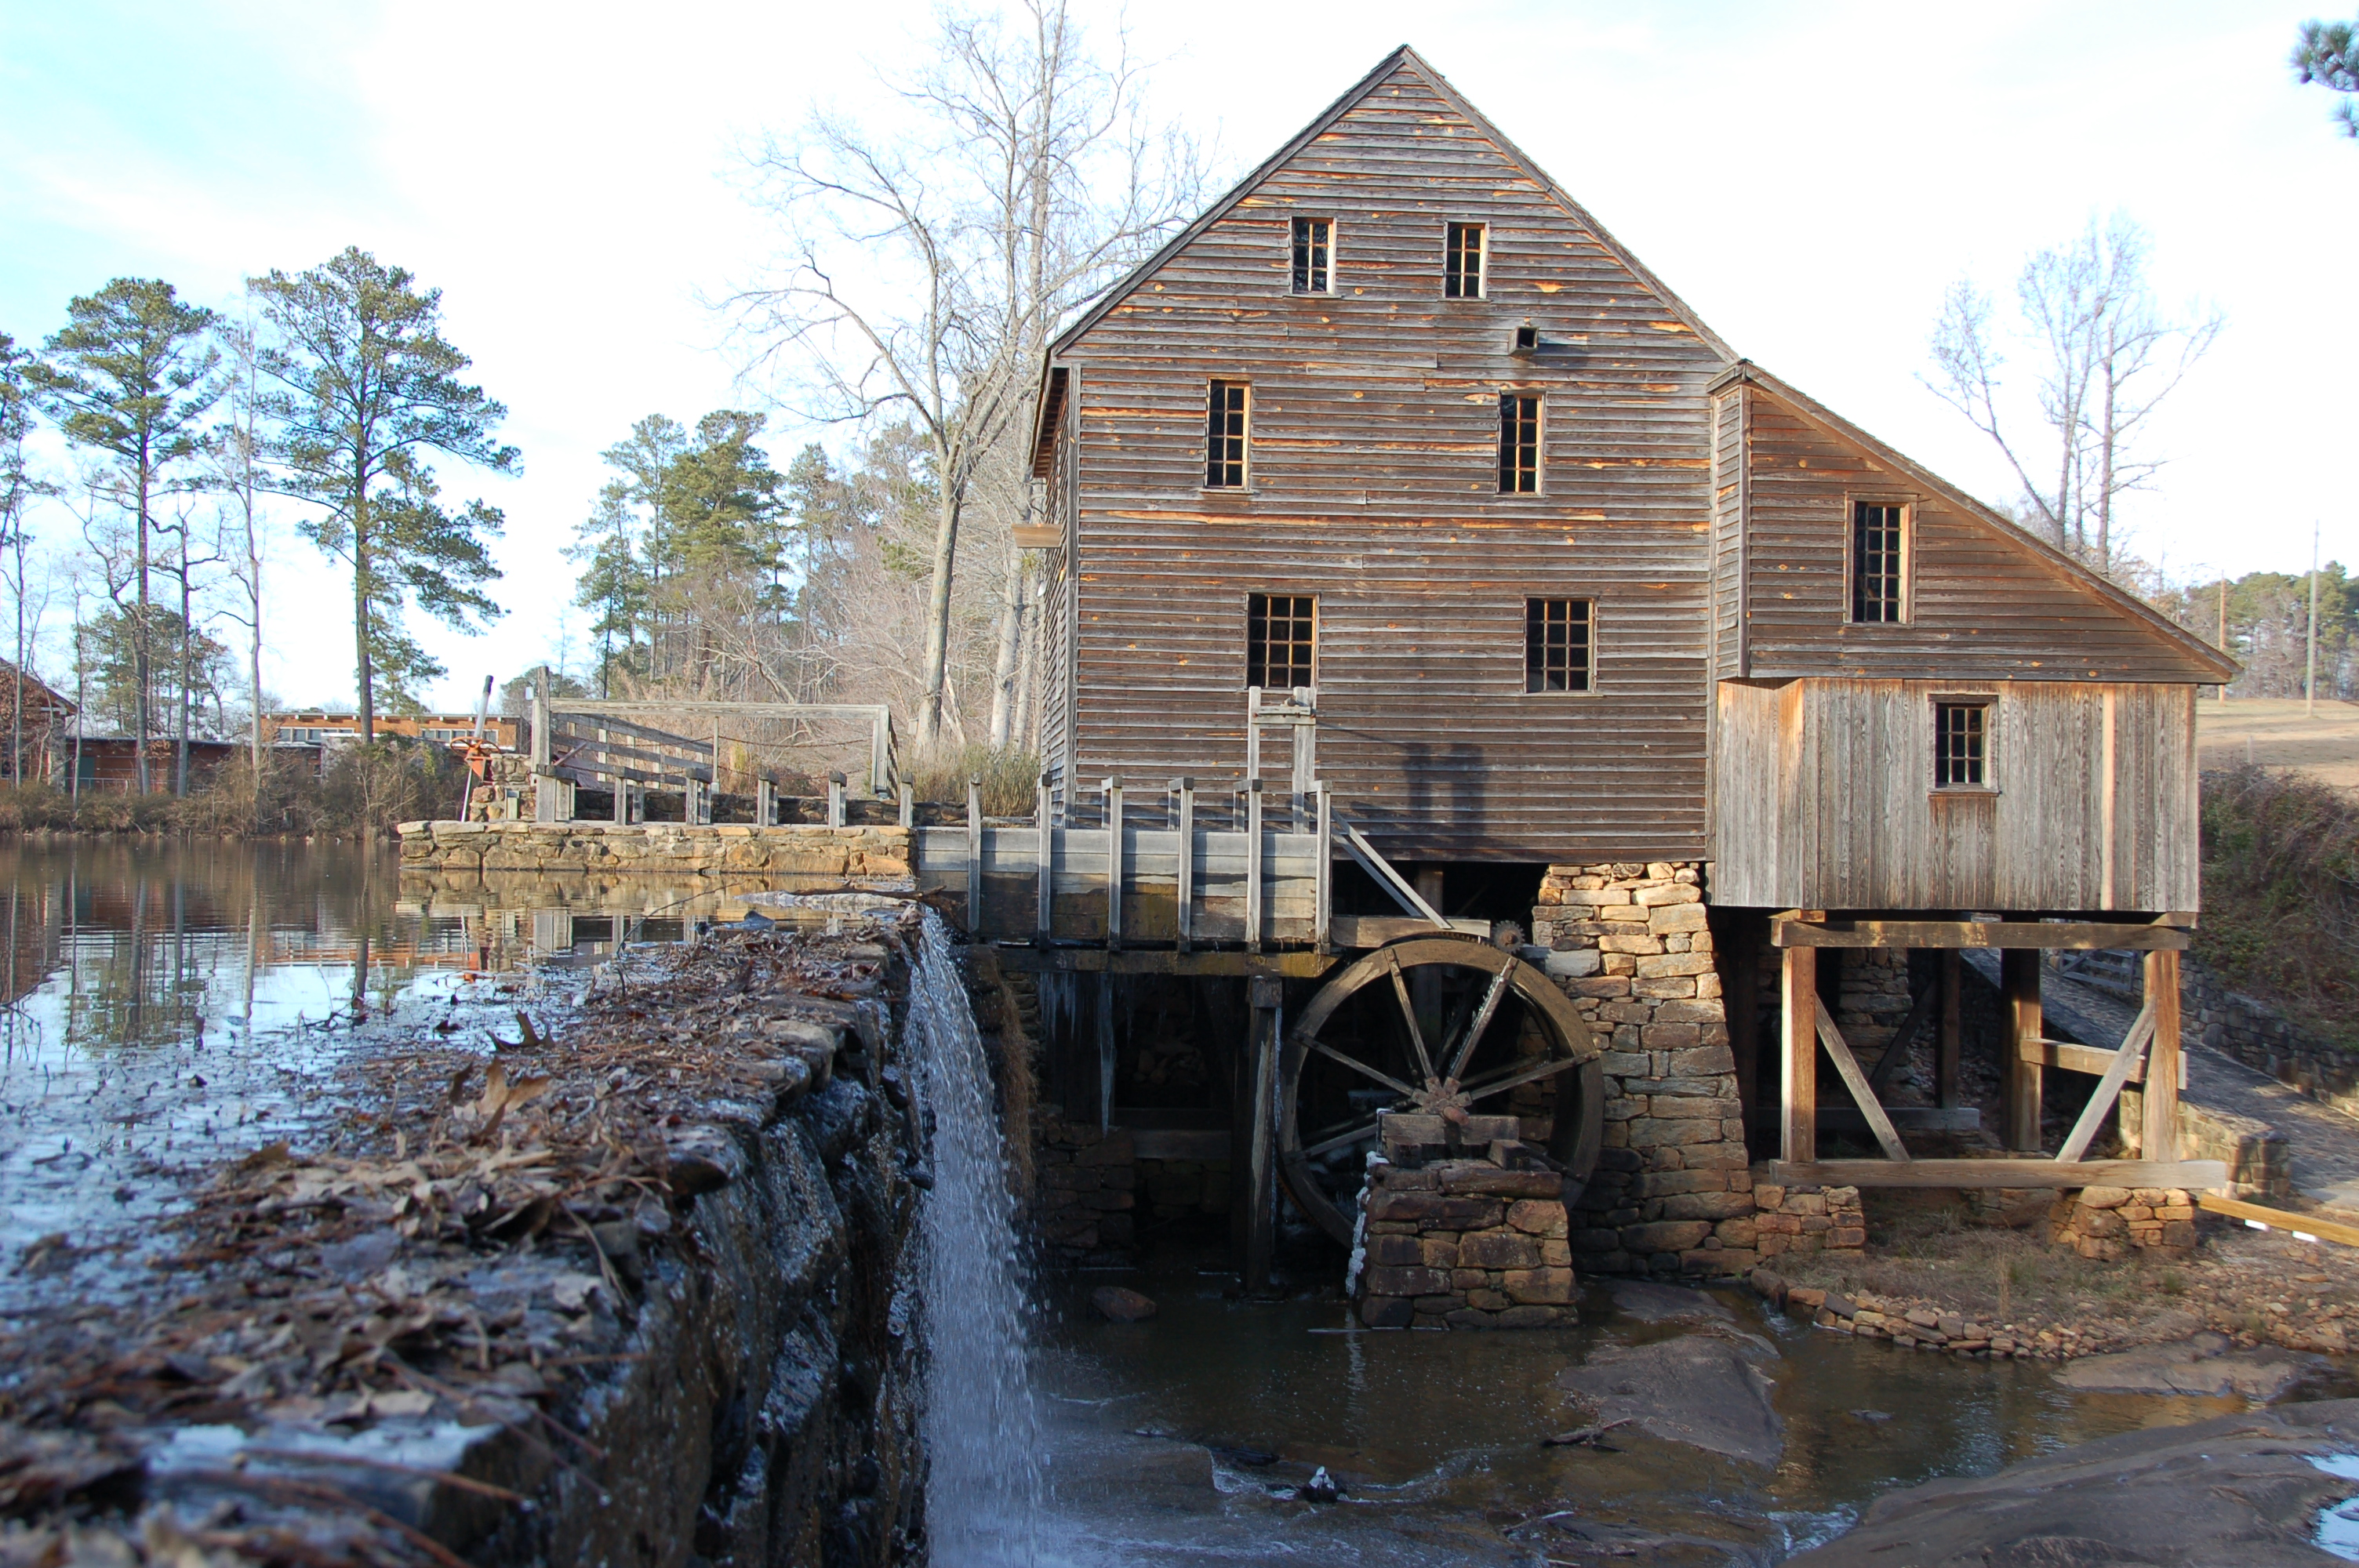 At Home Design Quarter Do You Know How To Build A Grist Mill Like Our Forefathers